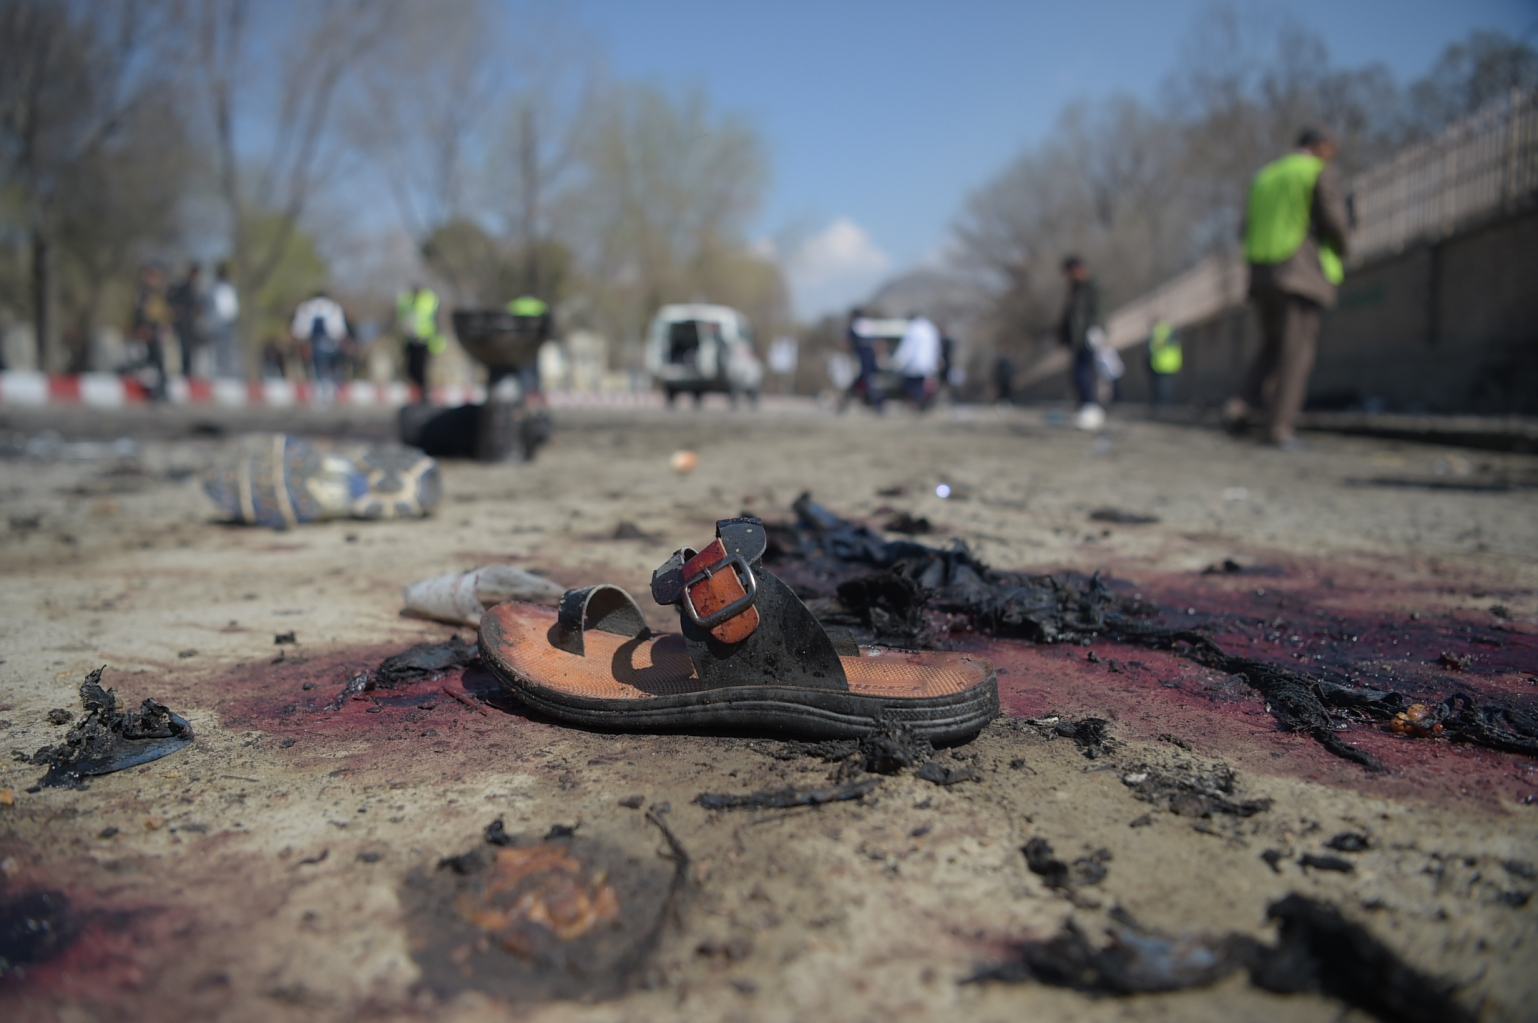 TOPSHOT - A sandal is seen laying on the ground along a road at the site of a suicide bombing attack in Kabul on March 21, 2018.  A suicide bomber on March 21 killed at least 26 people, many of them teenagers, in front of Kabul University, officials said, as Afghans took to the streets to celebrate the Persian new year holiday. The Islamic State group claimed responsibility for the deadly attack -- the fifth suicide bombing in the Afghan capital in recent weeks -- via its propaganda arm Amaq, SITE Intelligence Group said. The Taliban earlier denied involvement on Twitter.  / AFP PHOTO / SHAH MARAI        (Photo credit should read SHAH MARAI/AFP/Getty Images)